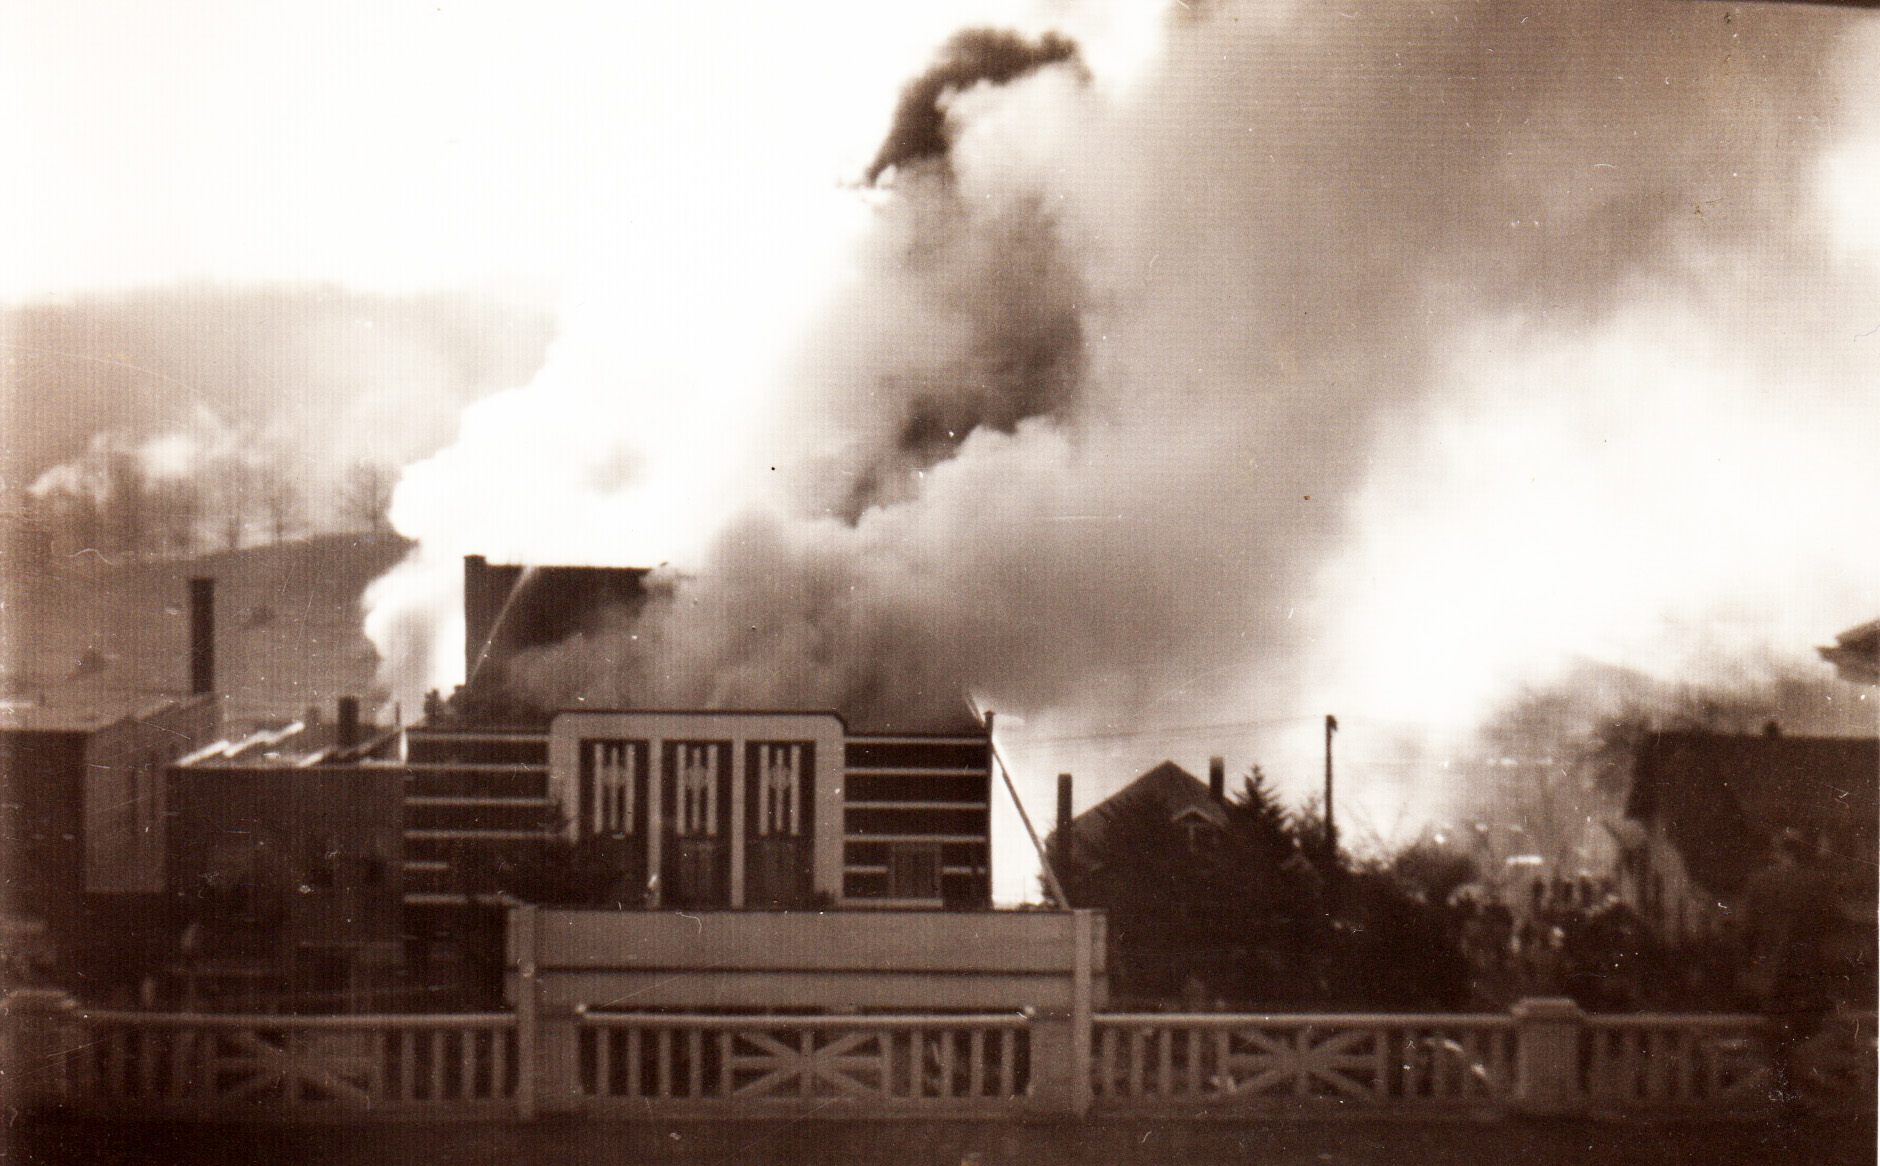 View of the 1950 Appalachian Theatre fire from the porch roof of the Daniel Boone Hotel. Image courtesy of Mark Hayes.